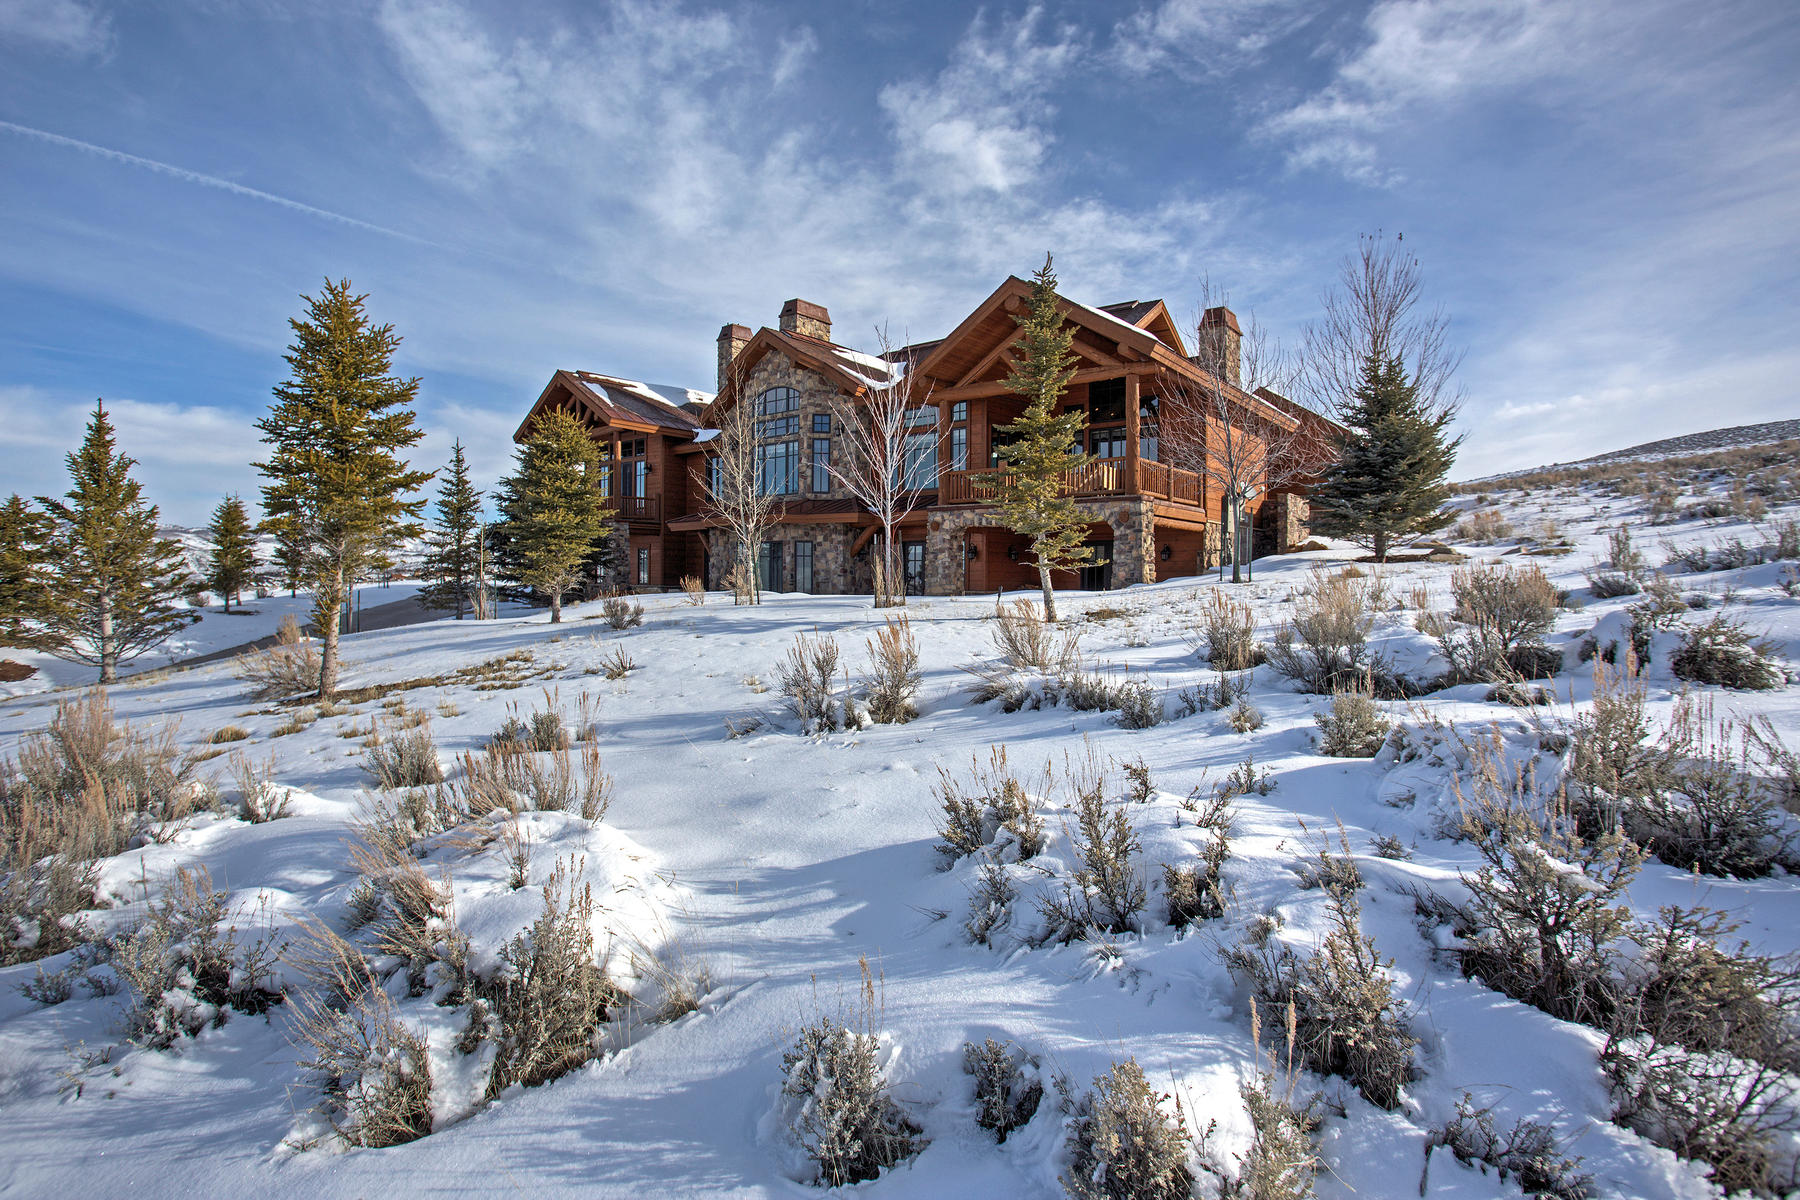 Moradia para Venda às Fabulous Large Home in Promontory with Beautiful Views 6262 Dakota Trail Lot #32 Park City, Utah, 84098 Estados Unidos